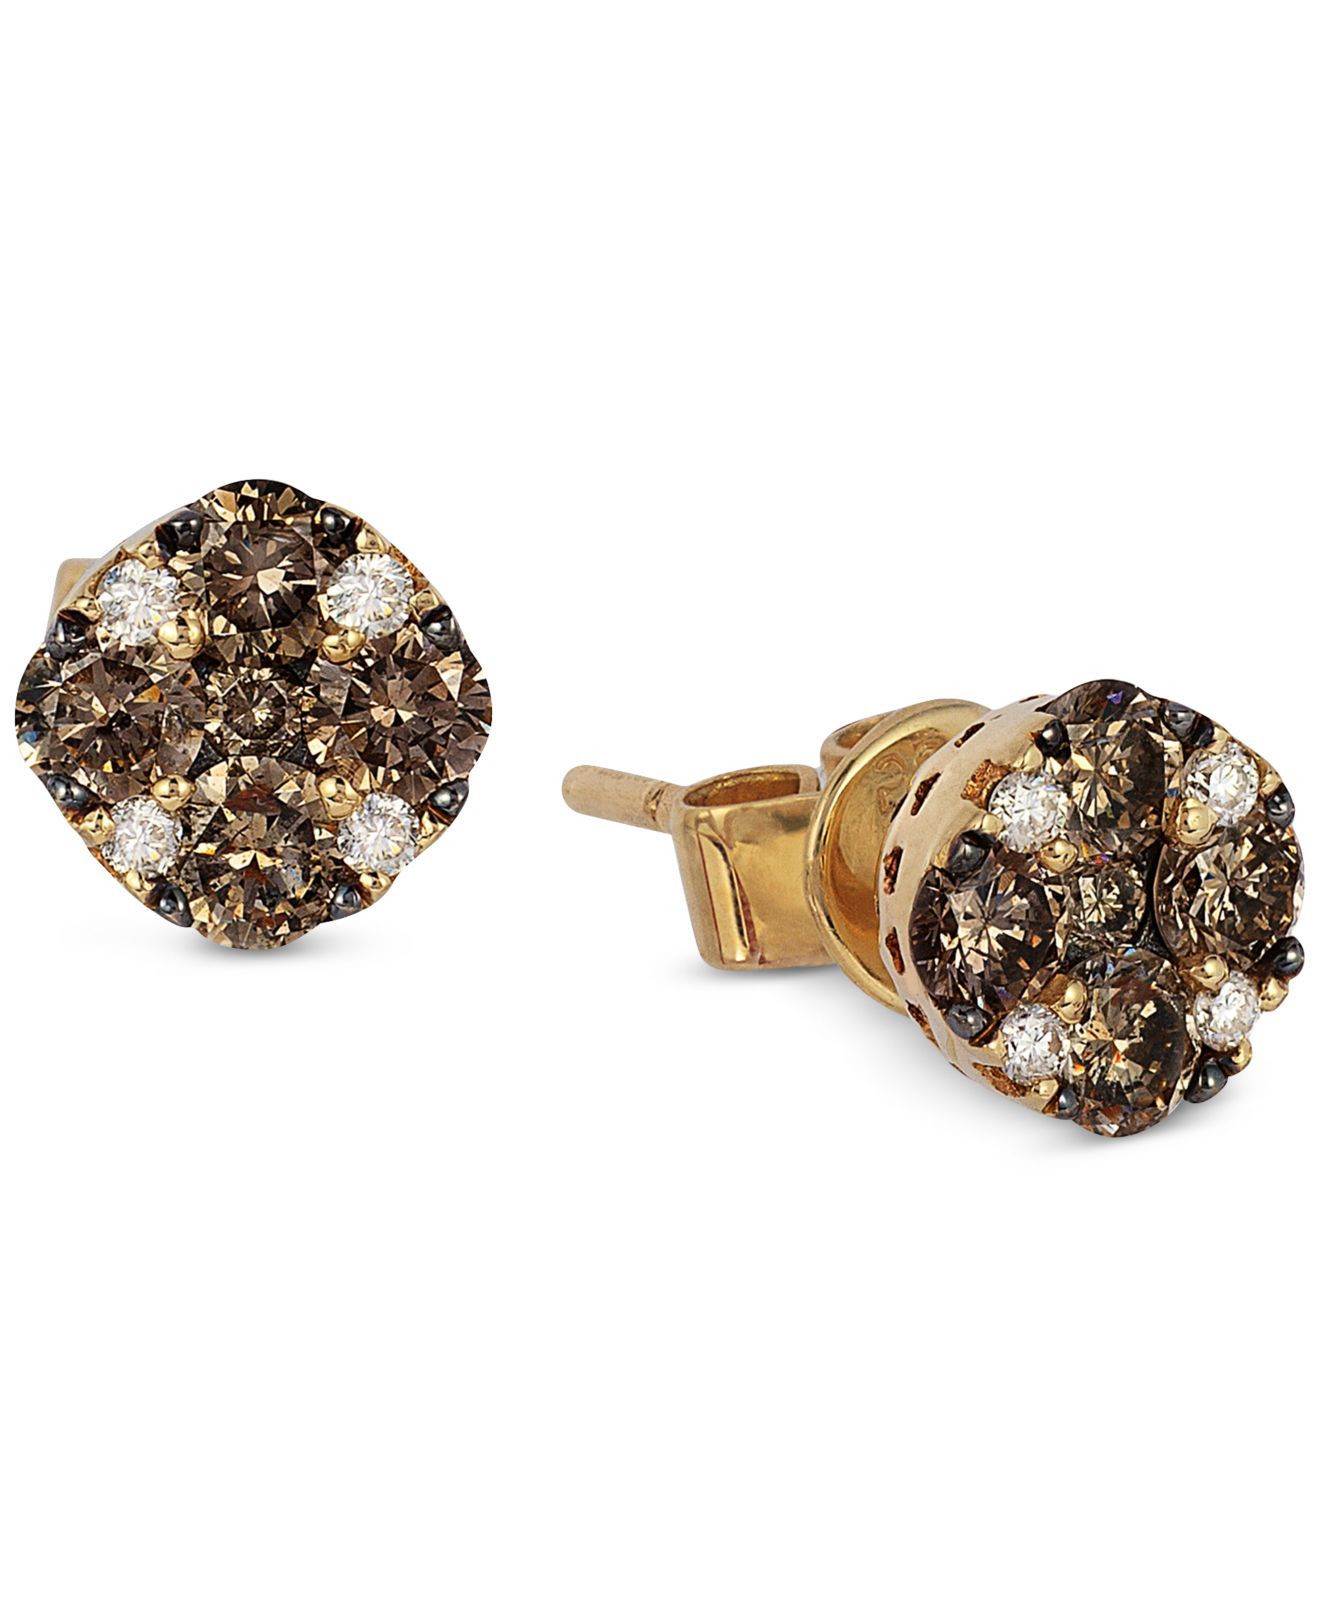 normal gallery le vian white in yellow earrings ct tw stud lyst brown chocolate product and jewelry gold diamond